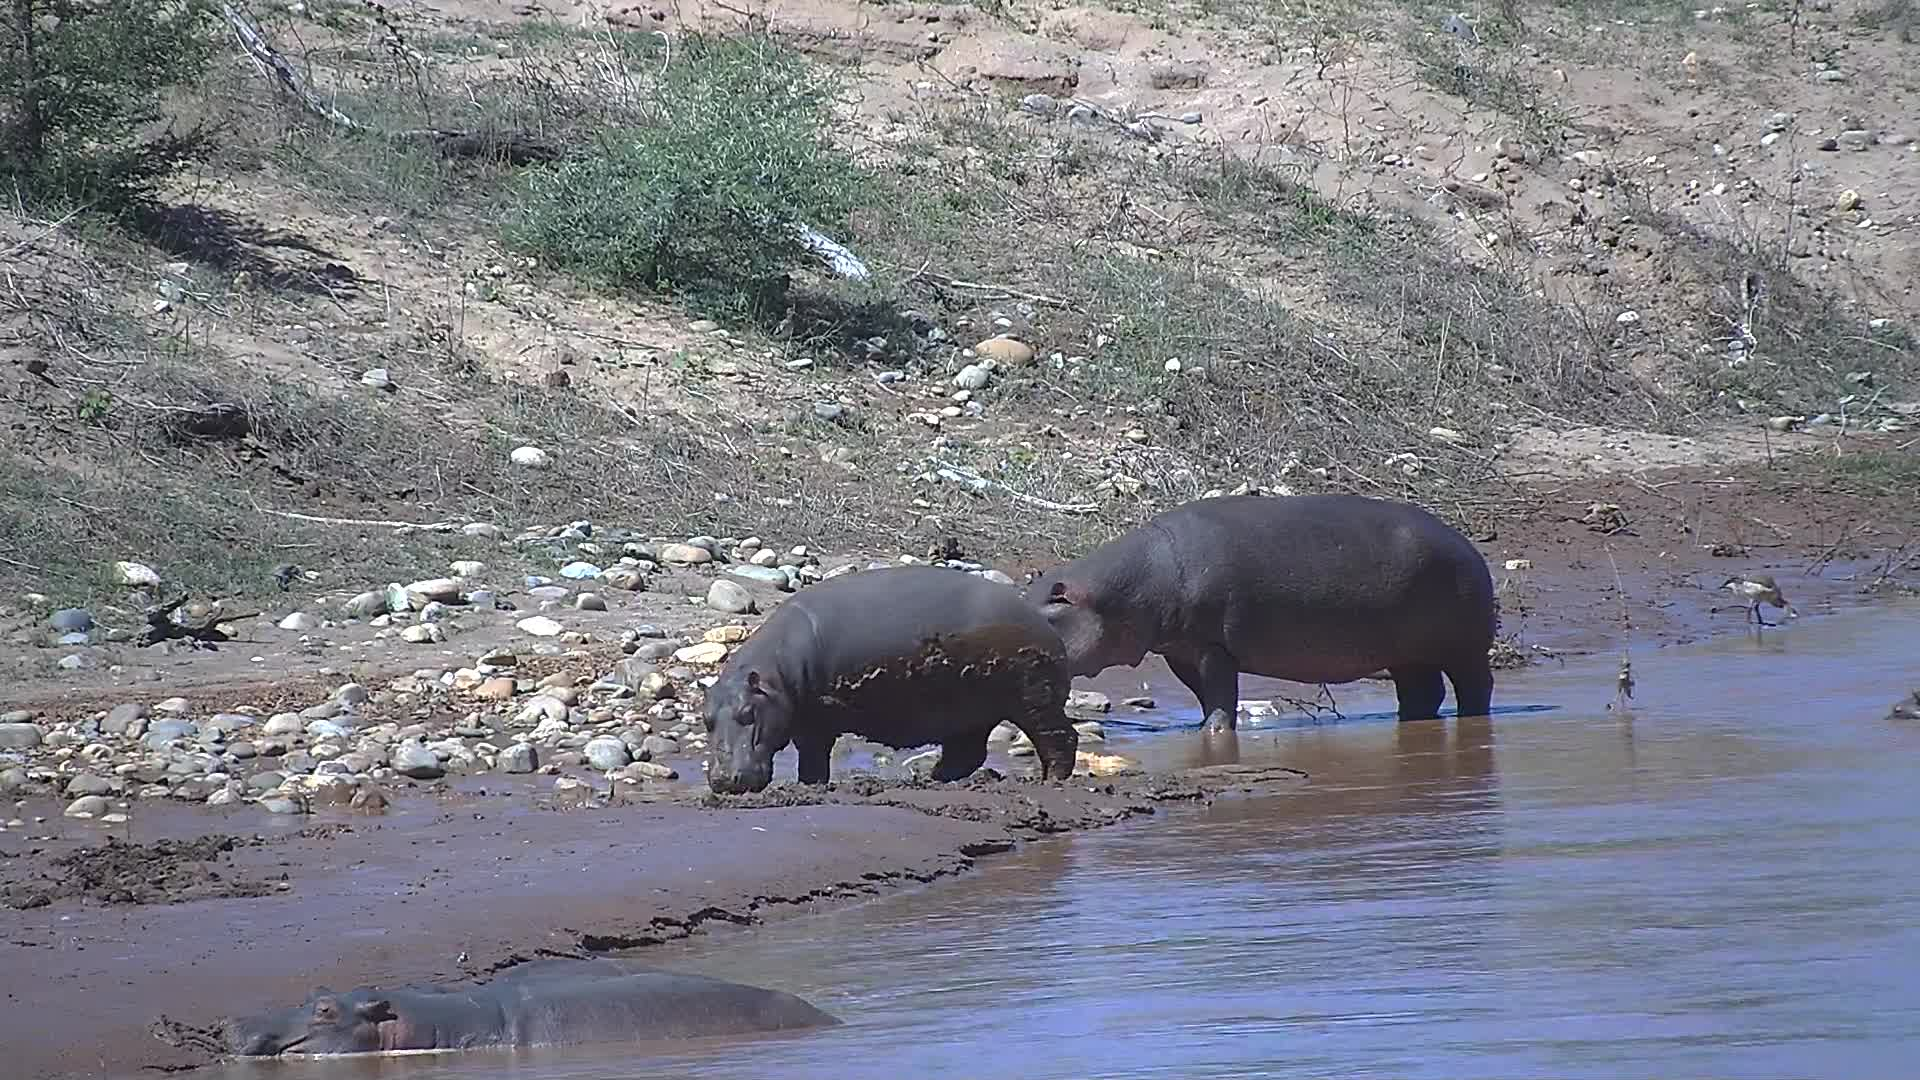 VIDEO:  Hippopotamus coming out of the water